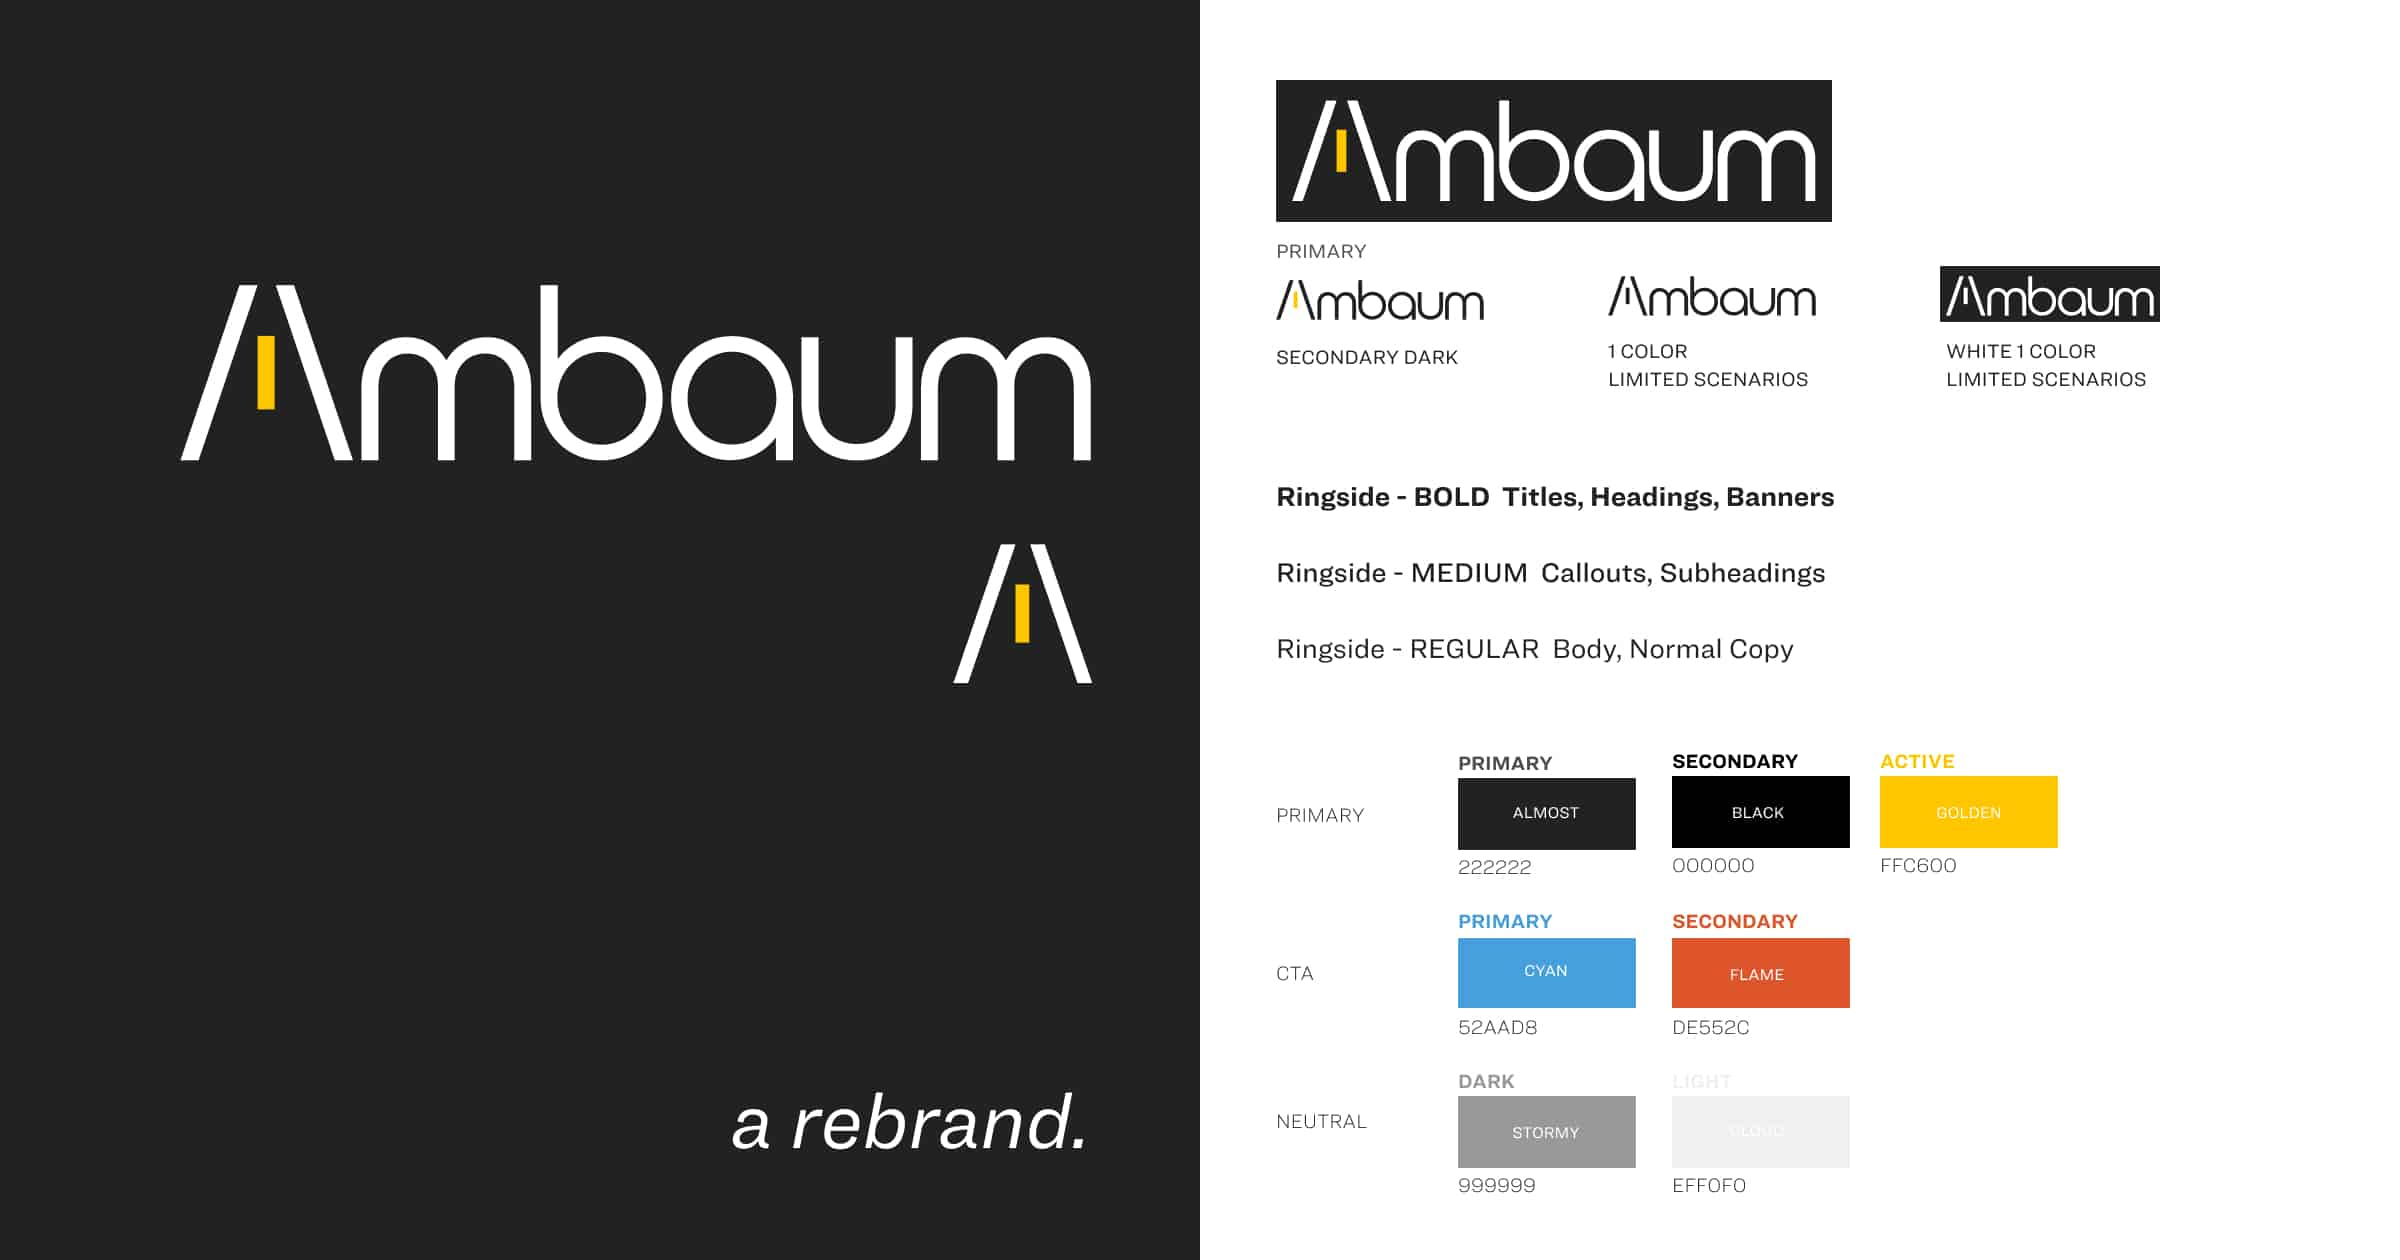 Behind the Scenes With the Ambaum Rebrand